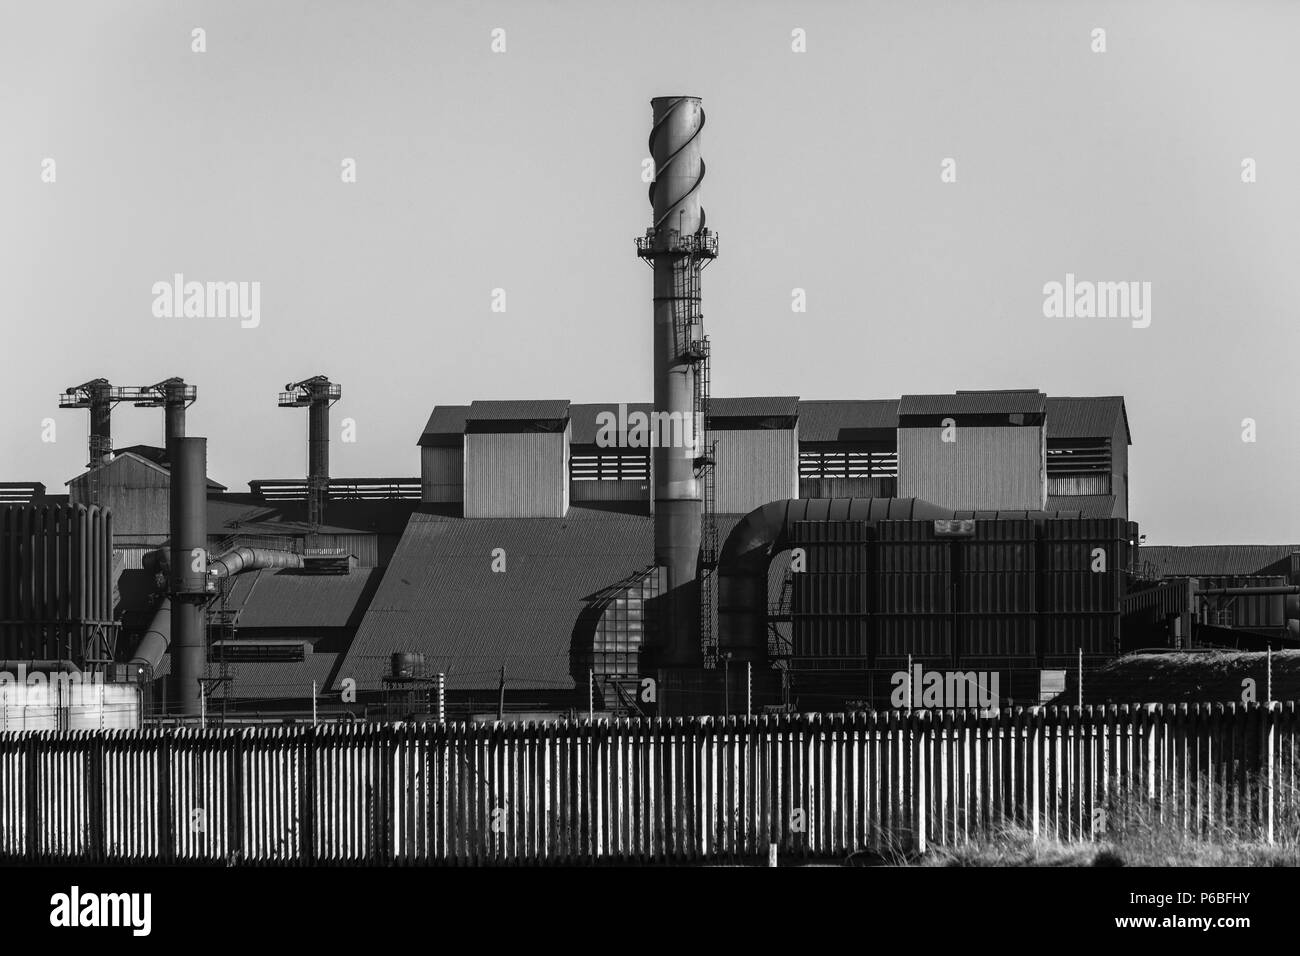 Factory structure industrial raw materials production  outdoors vintage black and white photo. - Stock Image